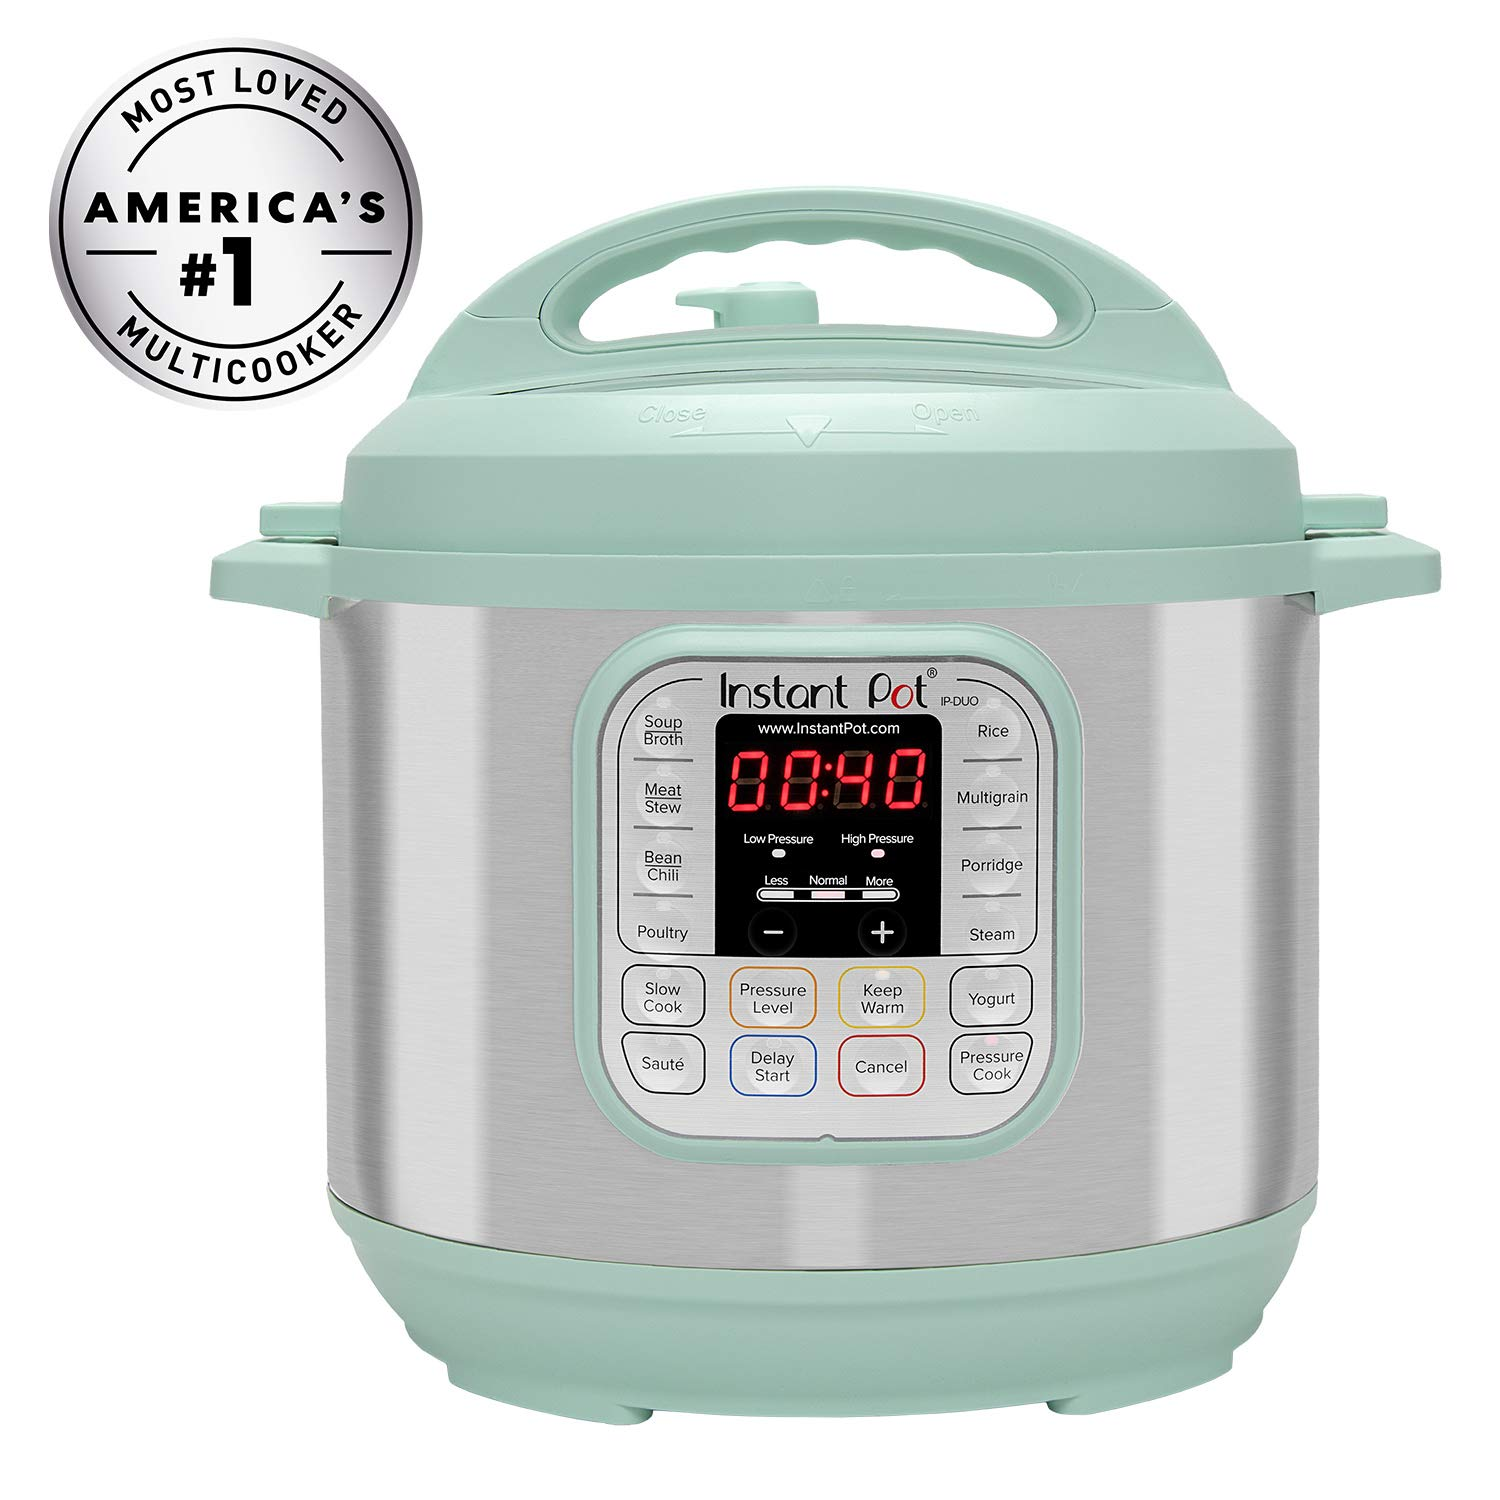 Instant Pot Duo 60 TEAL 6 Qt 7-in-1 Multi-Use Programmable Pressure, Slow, Rice Cooker, Steamer, Sauté, Yogurt Maker and Warmer, Stainless Steel